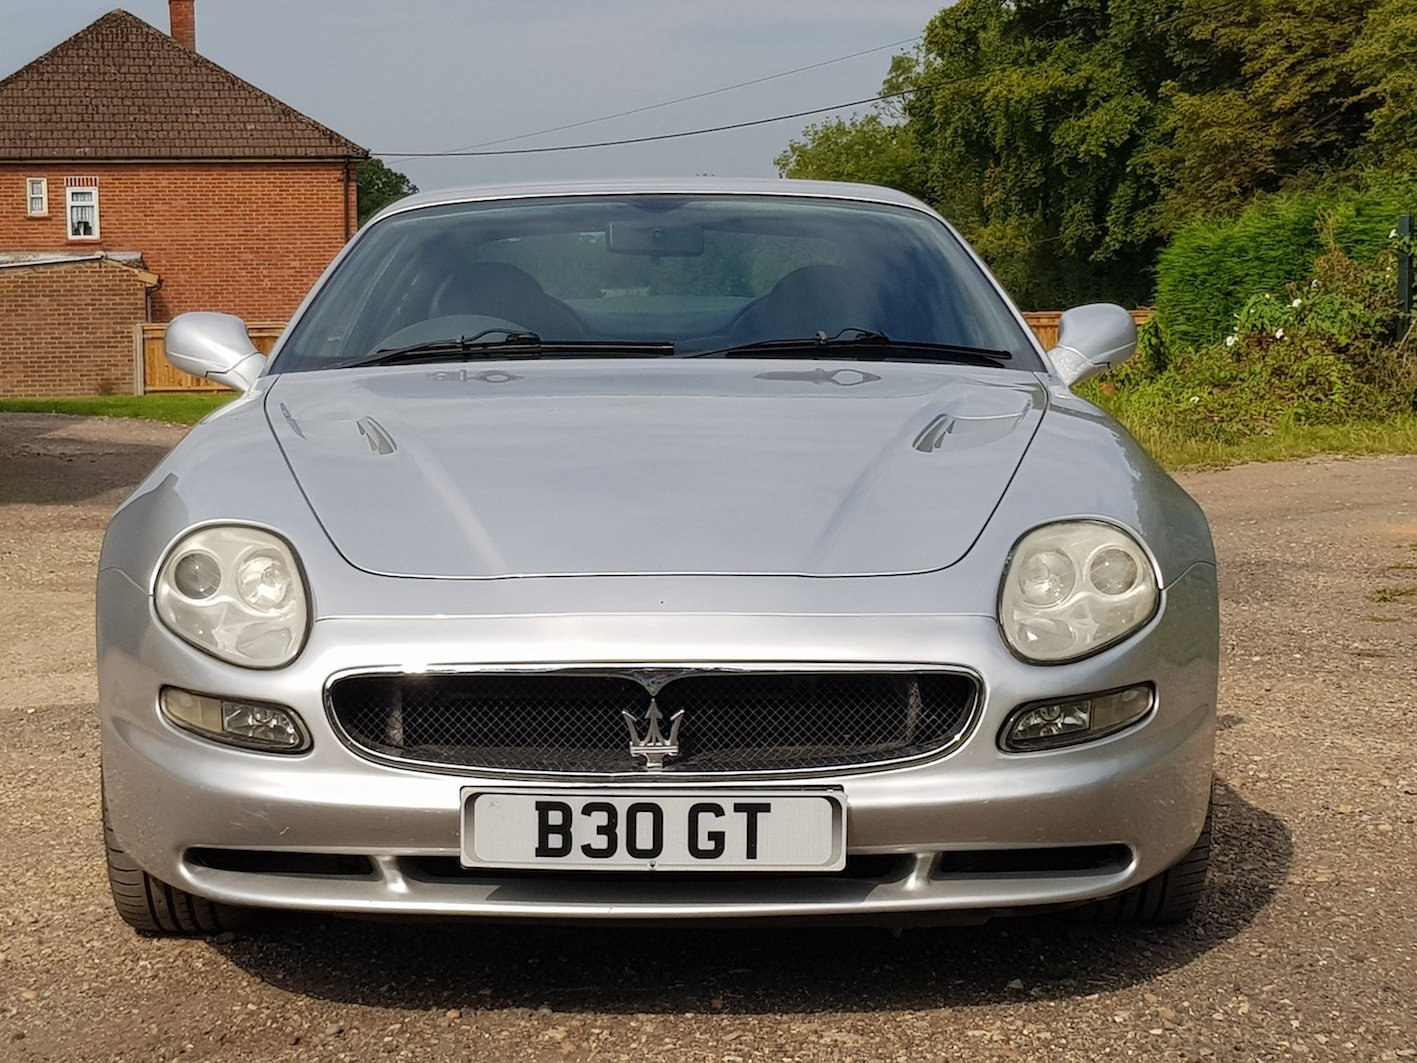 Maserati 3200 GT V8, 1999 For Sale (picture 2 of 5)